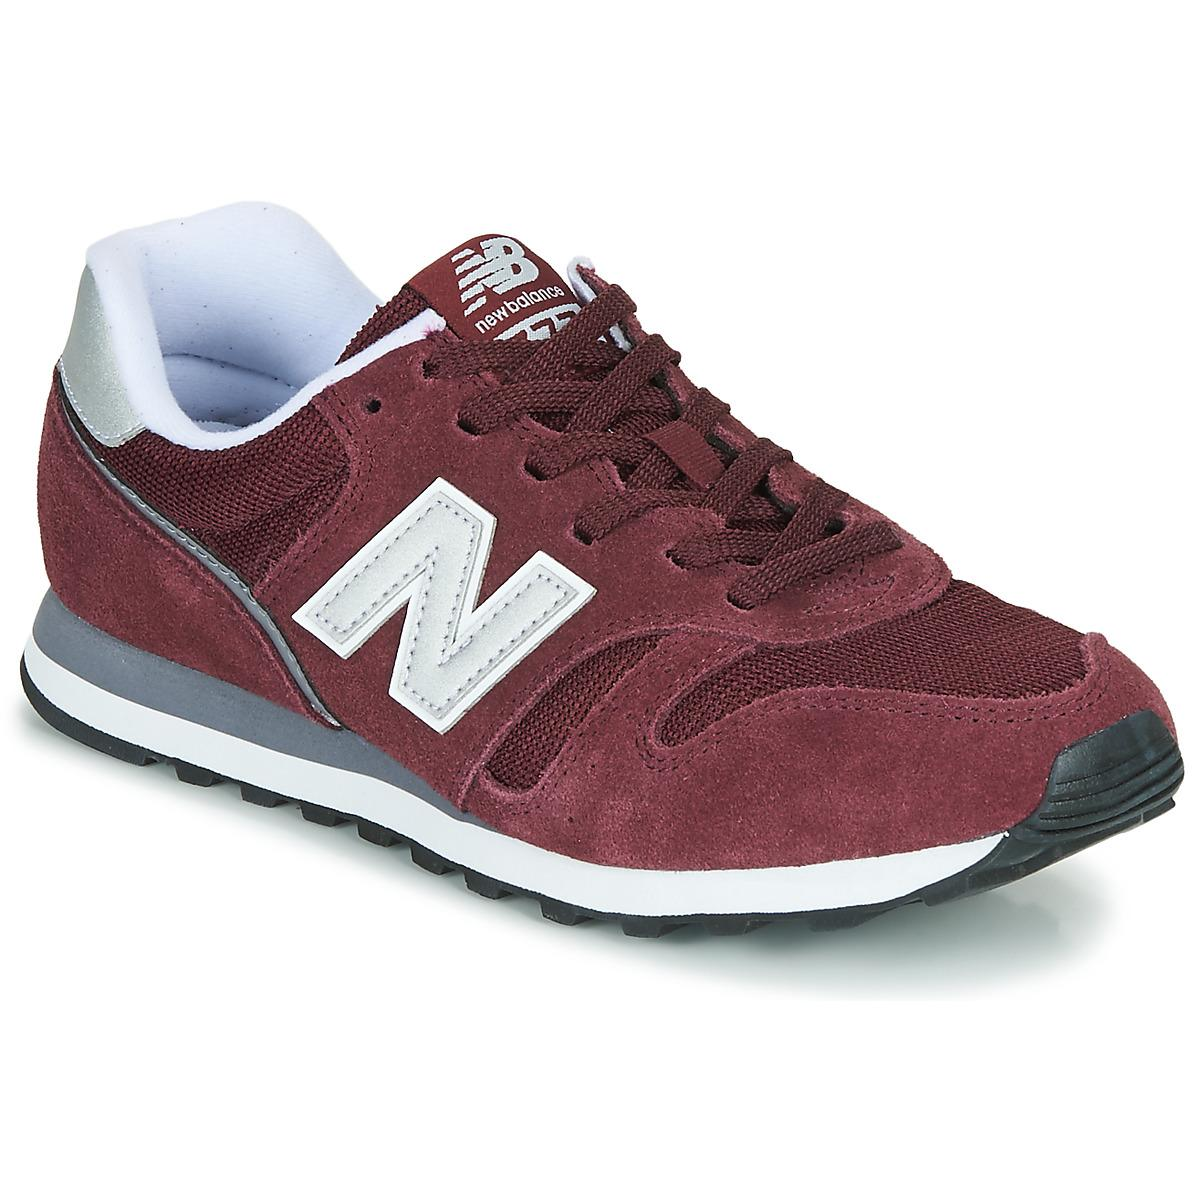 New Balance Suede 393 in Red Burgundy